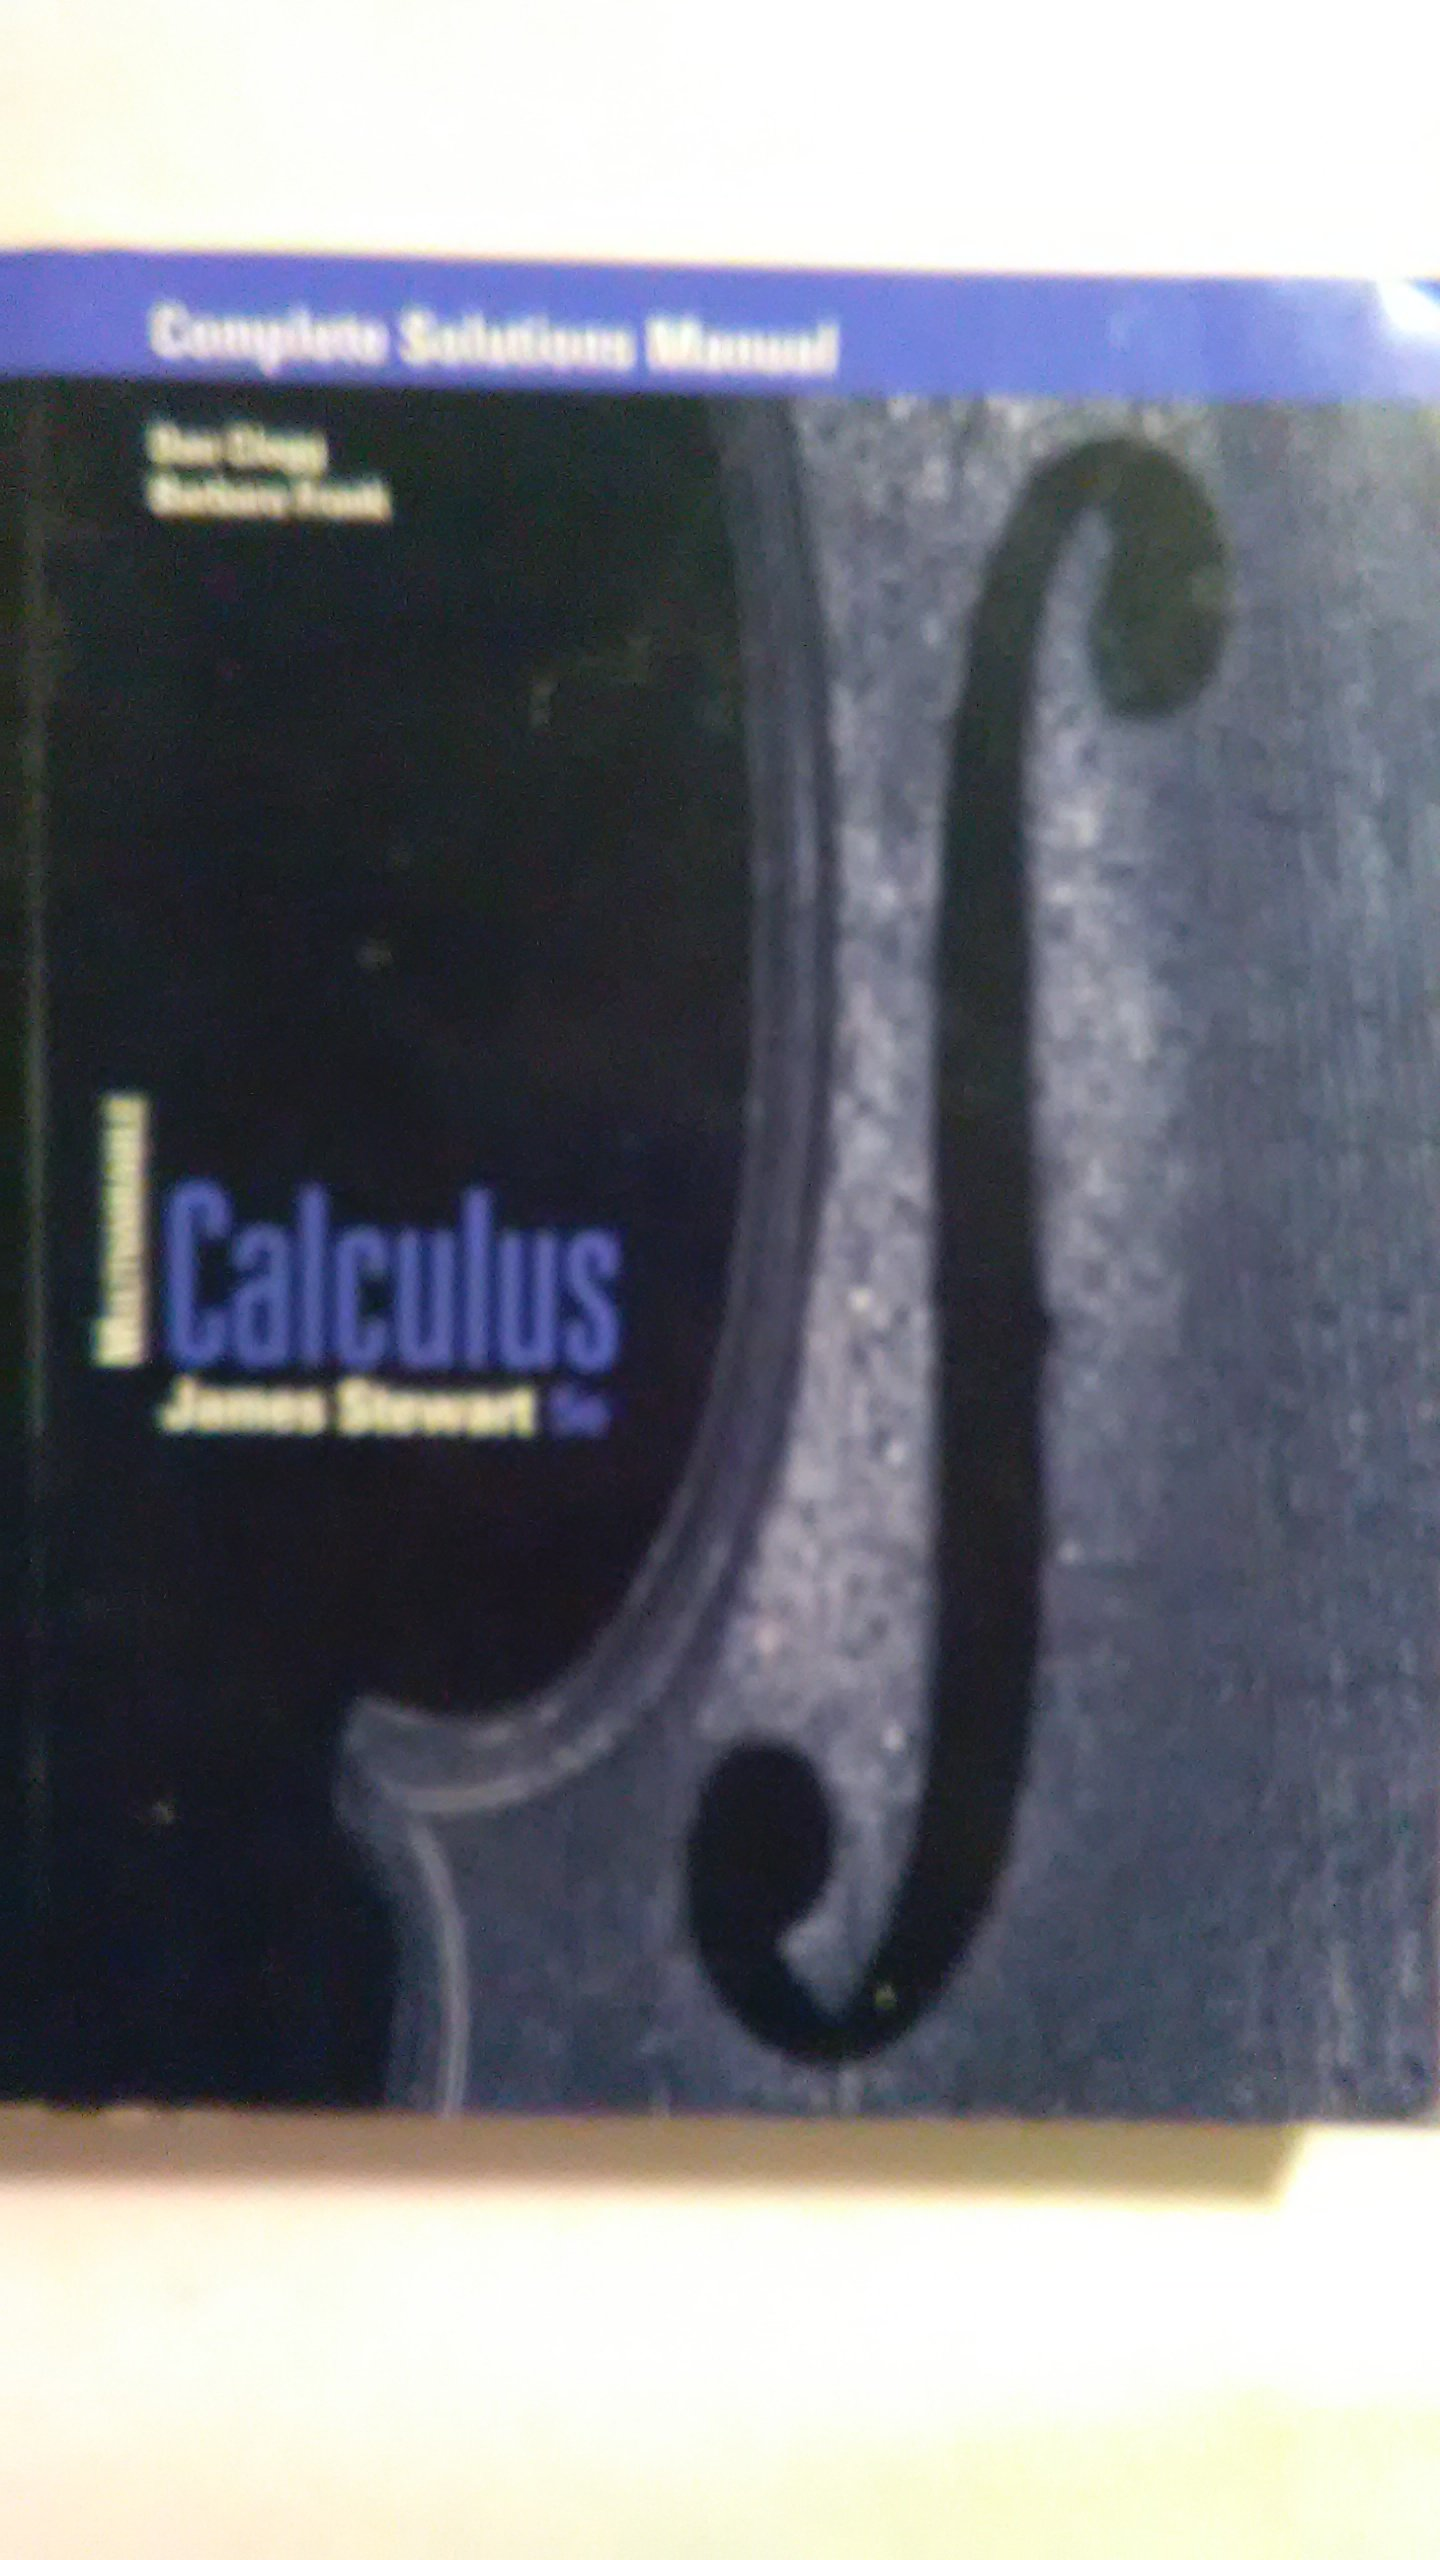 Complete Solutions Manual - Multivariable Calculus, 5th edition